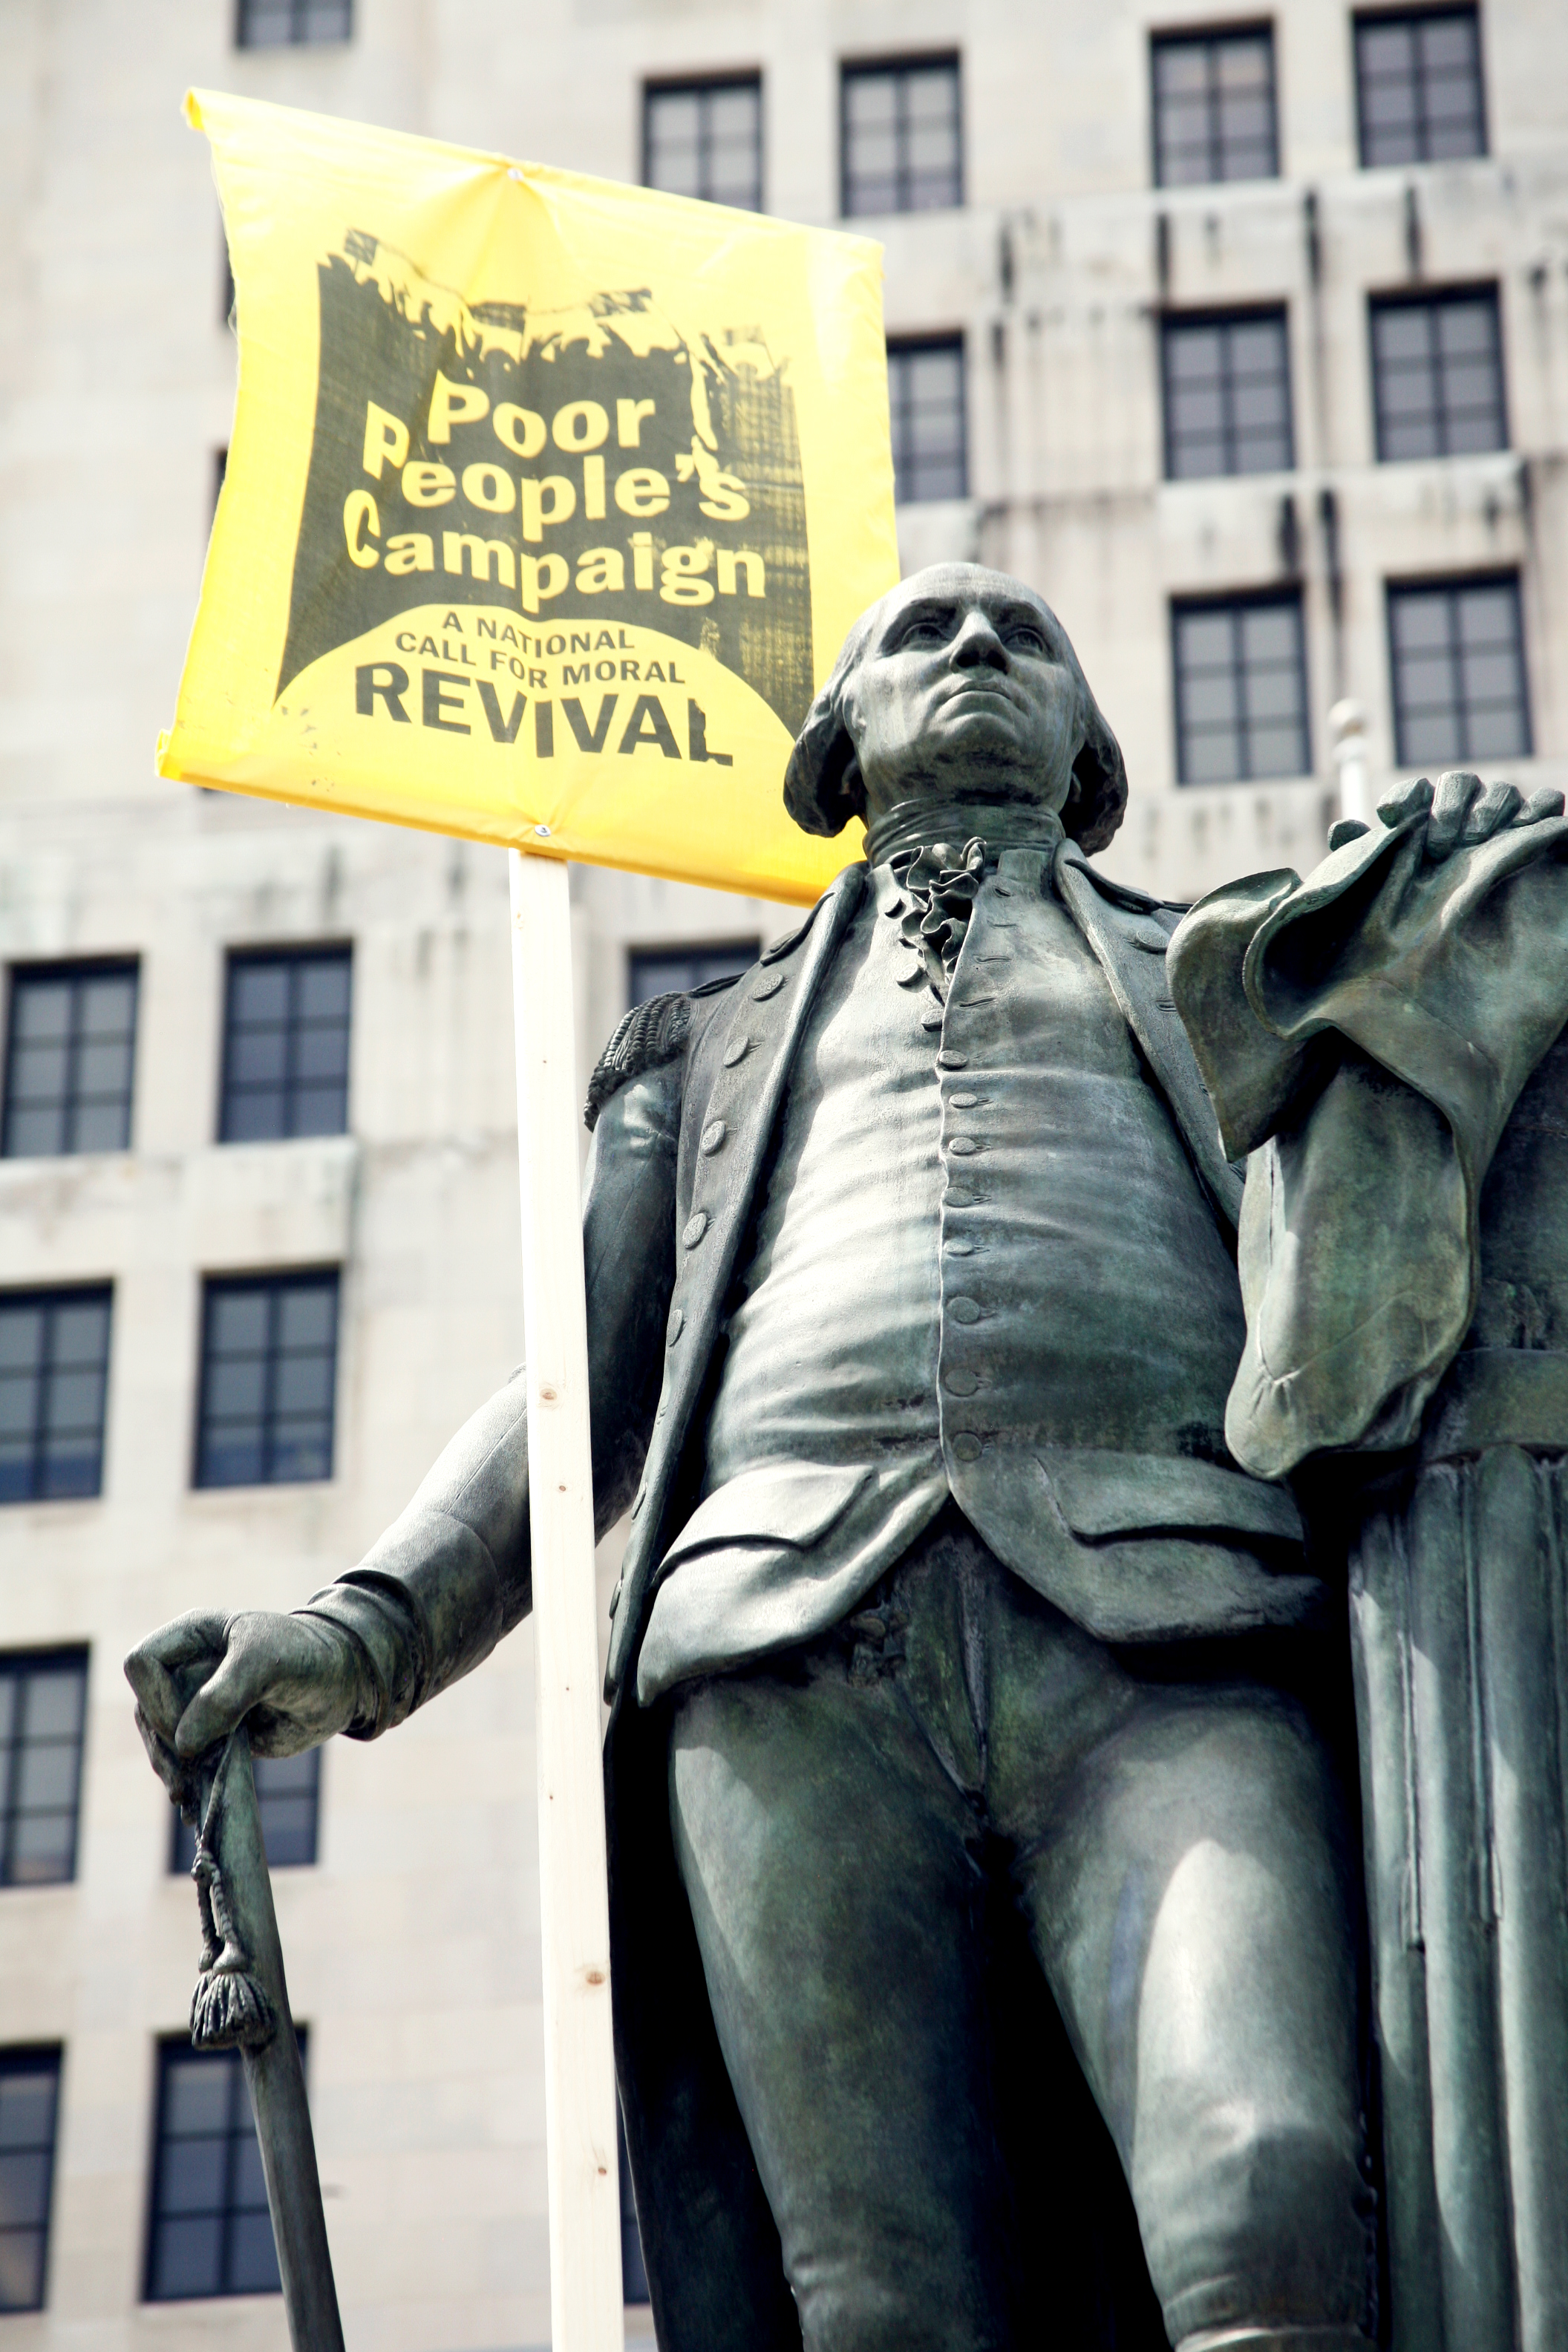 """The  Poor People's Campaign: A National Call for Moral Revival  is building a state-based nationwide movement led by the poor and dispossessed to end poverty, systemic racism, militarism and ecological devastation.  New York is one of 40 states that took part in 40 Days of Action launching the Campaign in May and June, 2018. In this first phase, we engaged thousands of New Yorkers in direct action, political education, and cultural expression that lifted up the stories of the directly impacted and demanded that our state """"fight poverty, not the poor.""""  Now in phase two of the Campaign, we're organizing in communities across New York to build a multi-issue, multi-racial, multi-faith, intergenerational movement prepared to work together for the long-haul. Your donations make that organizing work possible.  Thank you for being a part of this movement!    Labor-Religion Coalition of New York State    - a 501(c)3 organization - is the fiscal sponsor of the New York State Poor People's Campaign: A National Call for Moral Revival. Donations are tax-deductible."""